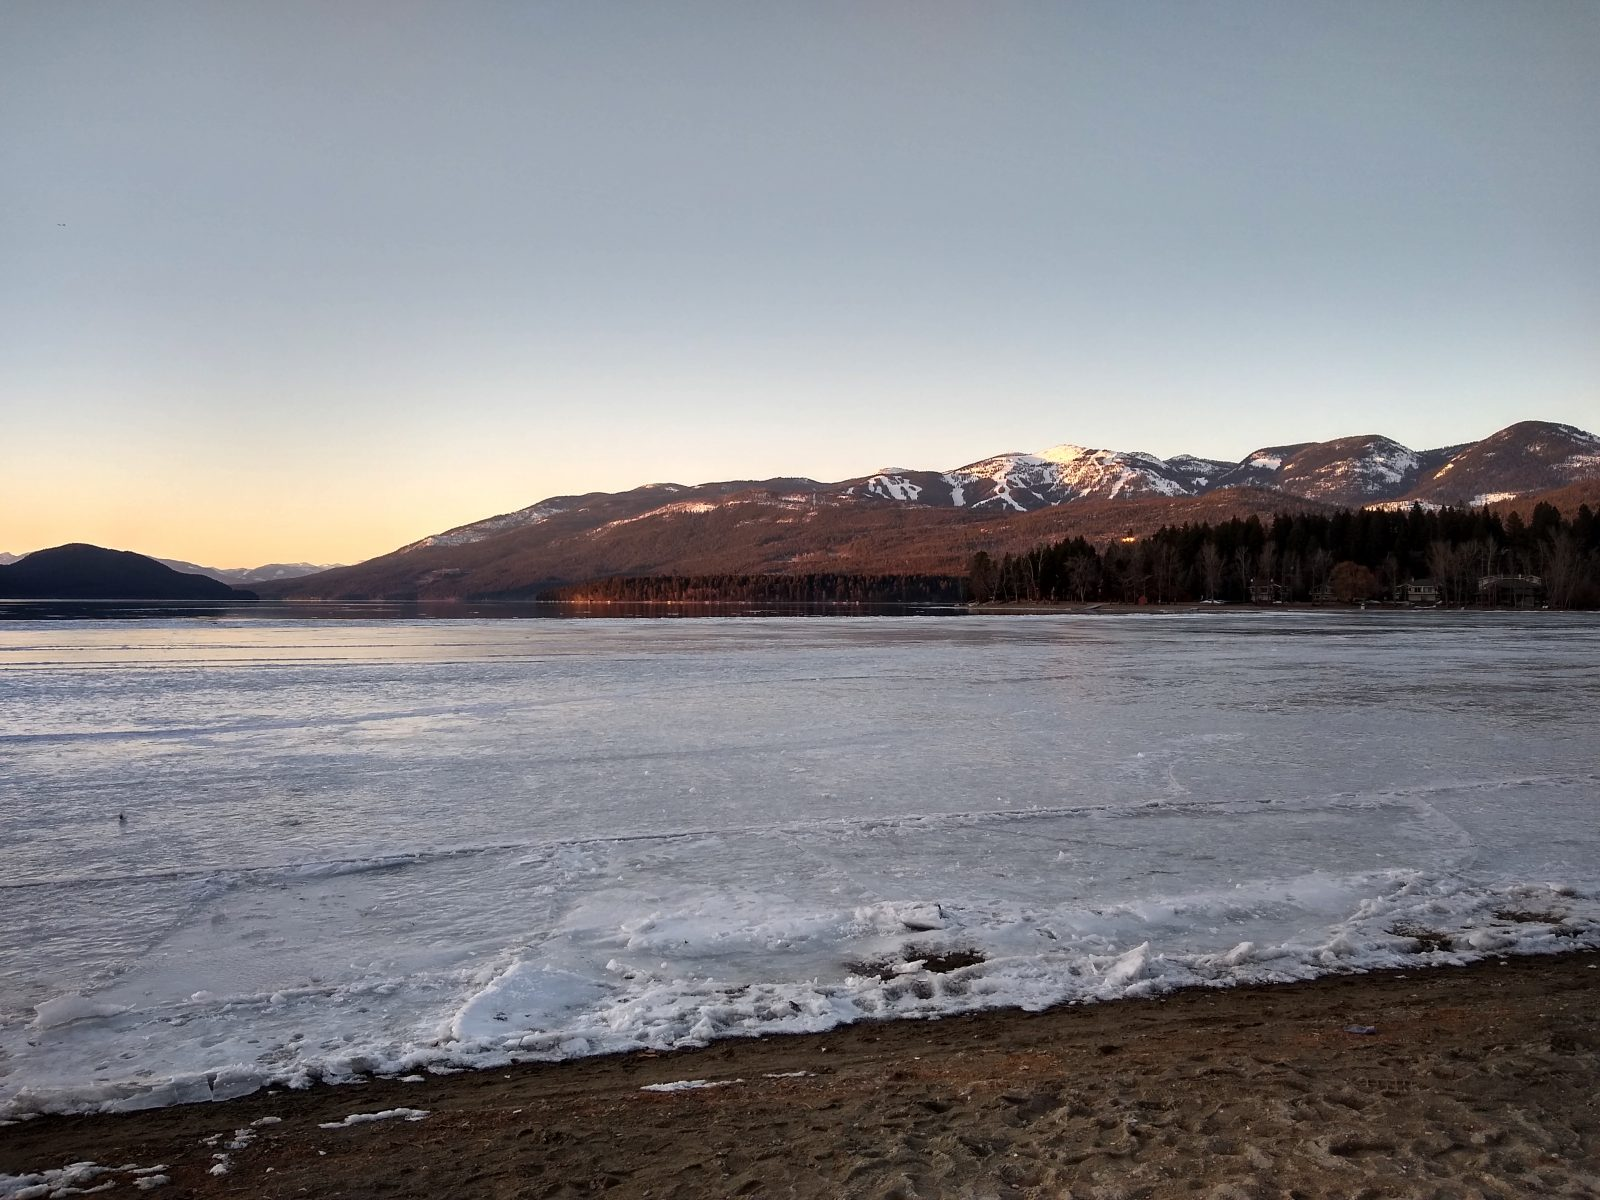 Whitefish Lake - March 16, 2020